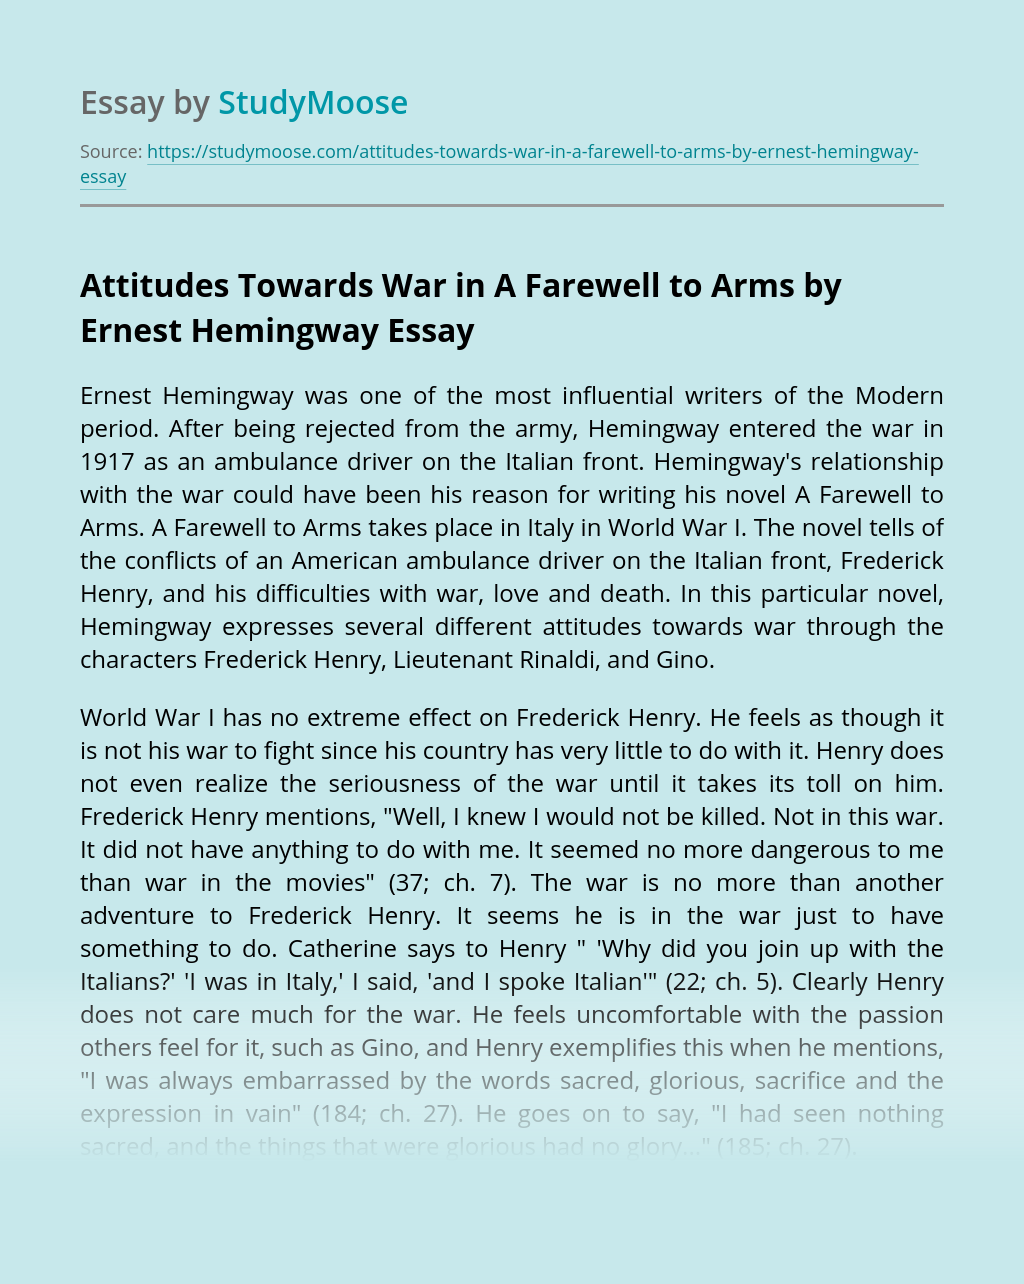 Attitudes Towards War in A Farewell to Arms by Ernest Hemingway